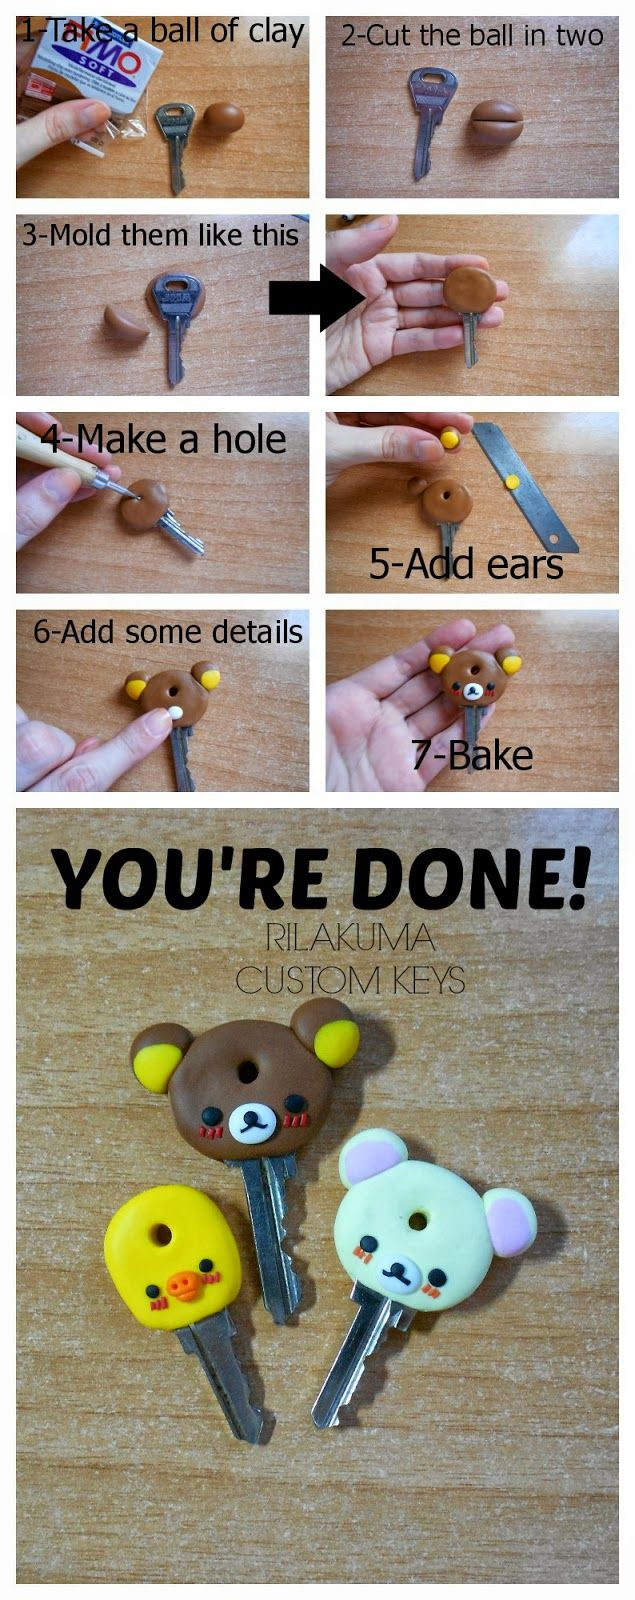 Dunno bout making Rilakkuma with a bullet hole in his head, but still a cute tutorial.